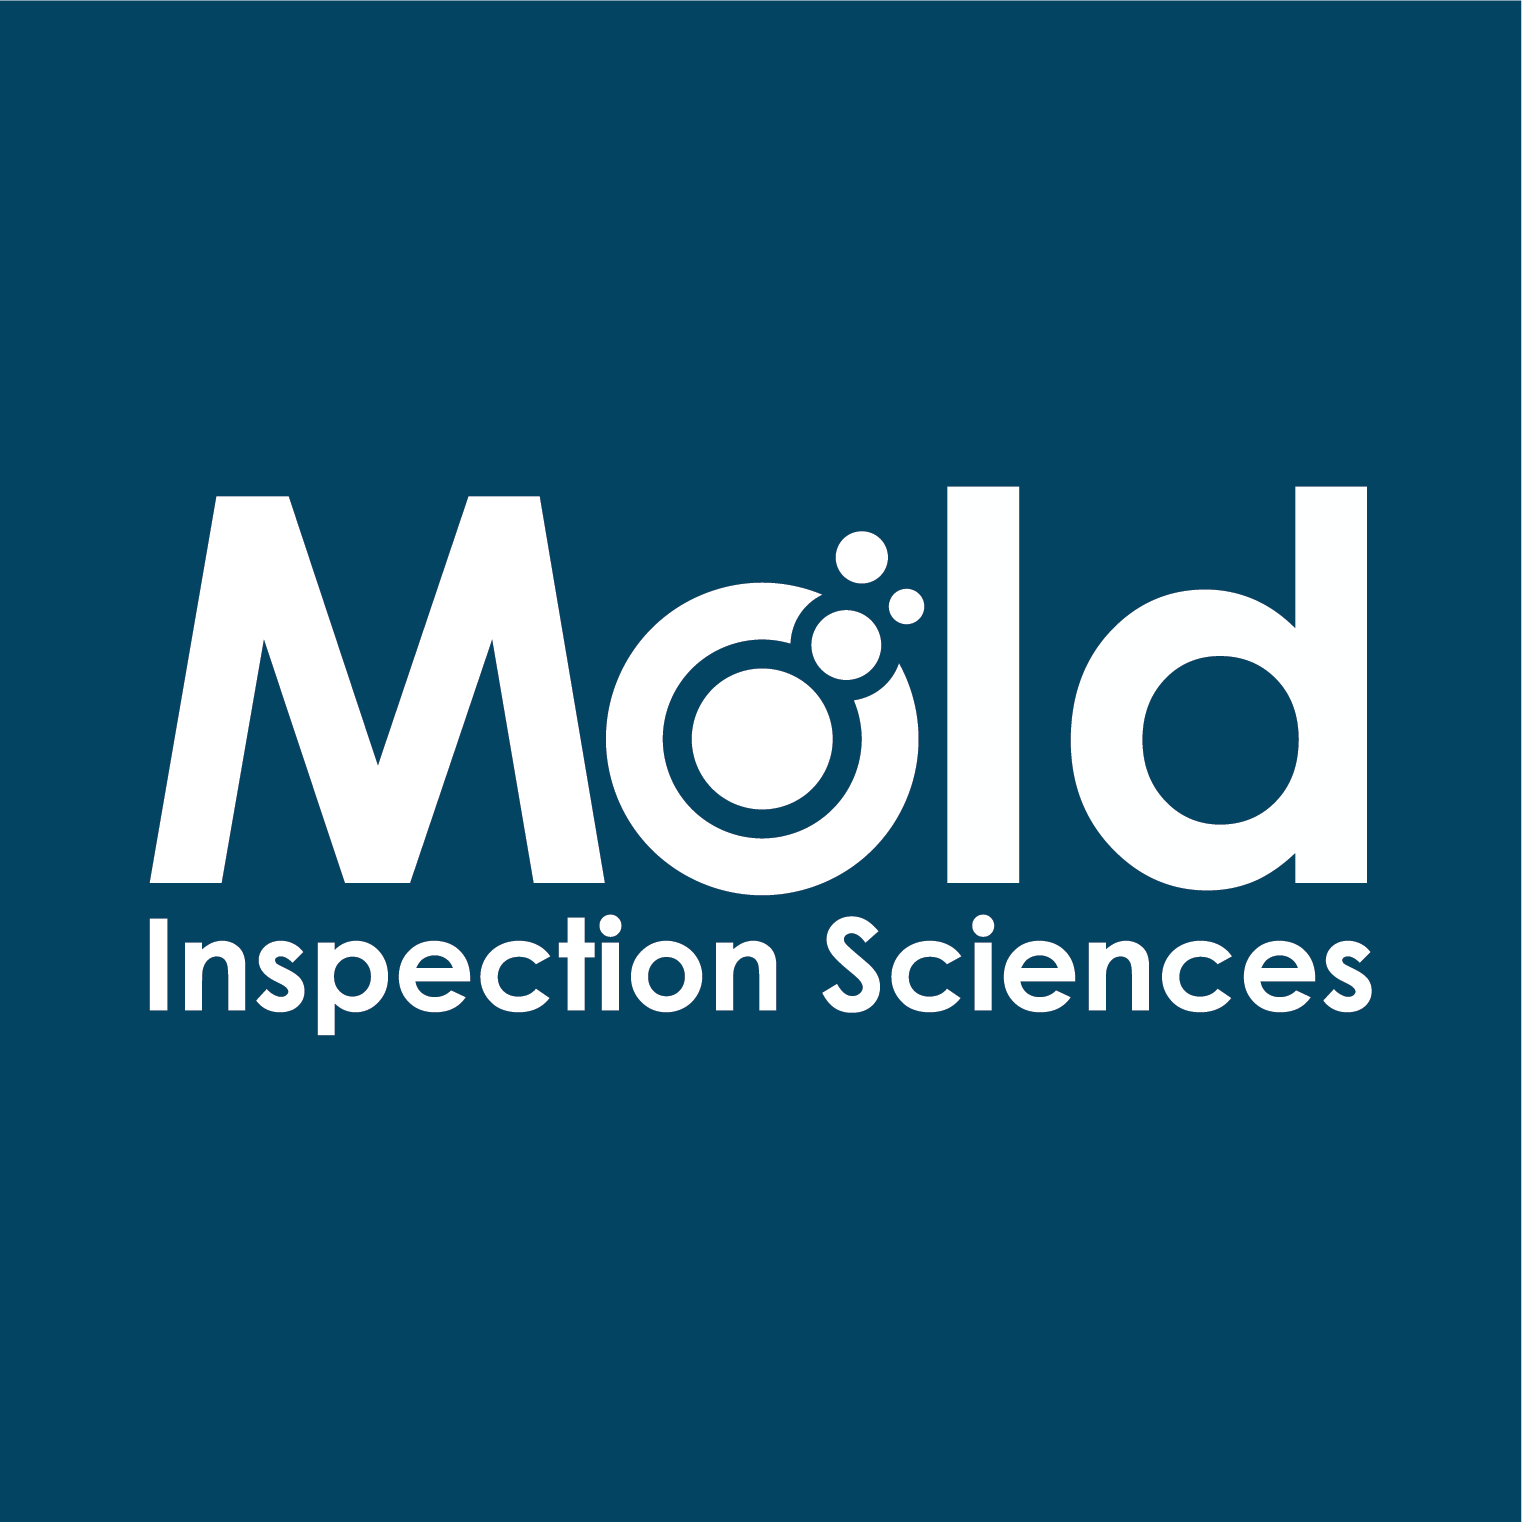 Mold Inspection Sciences